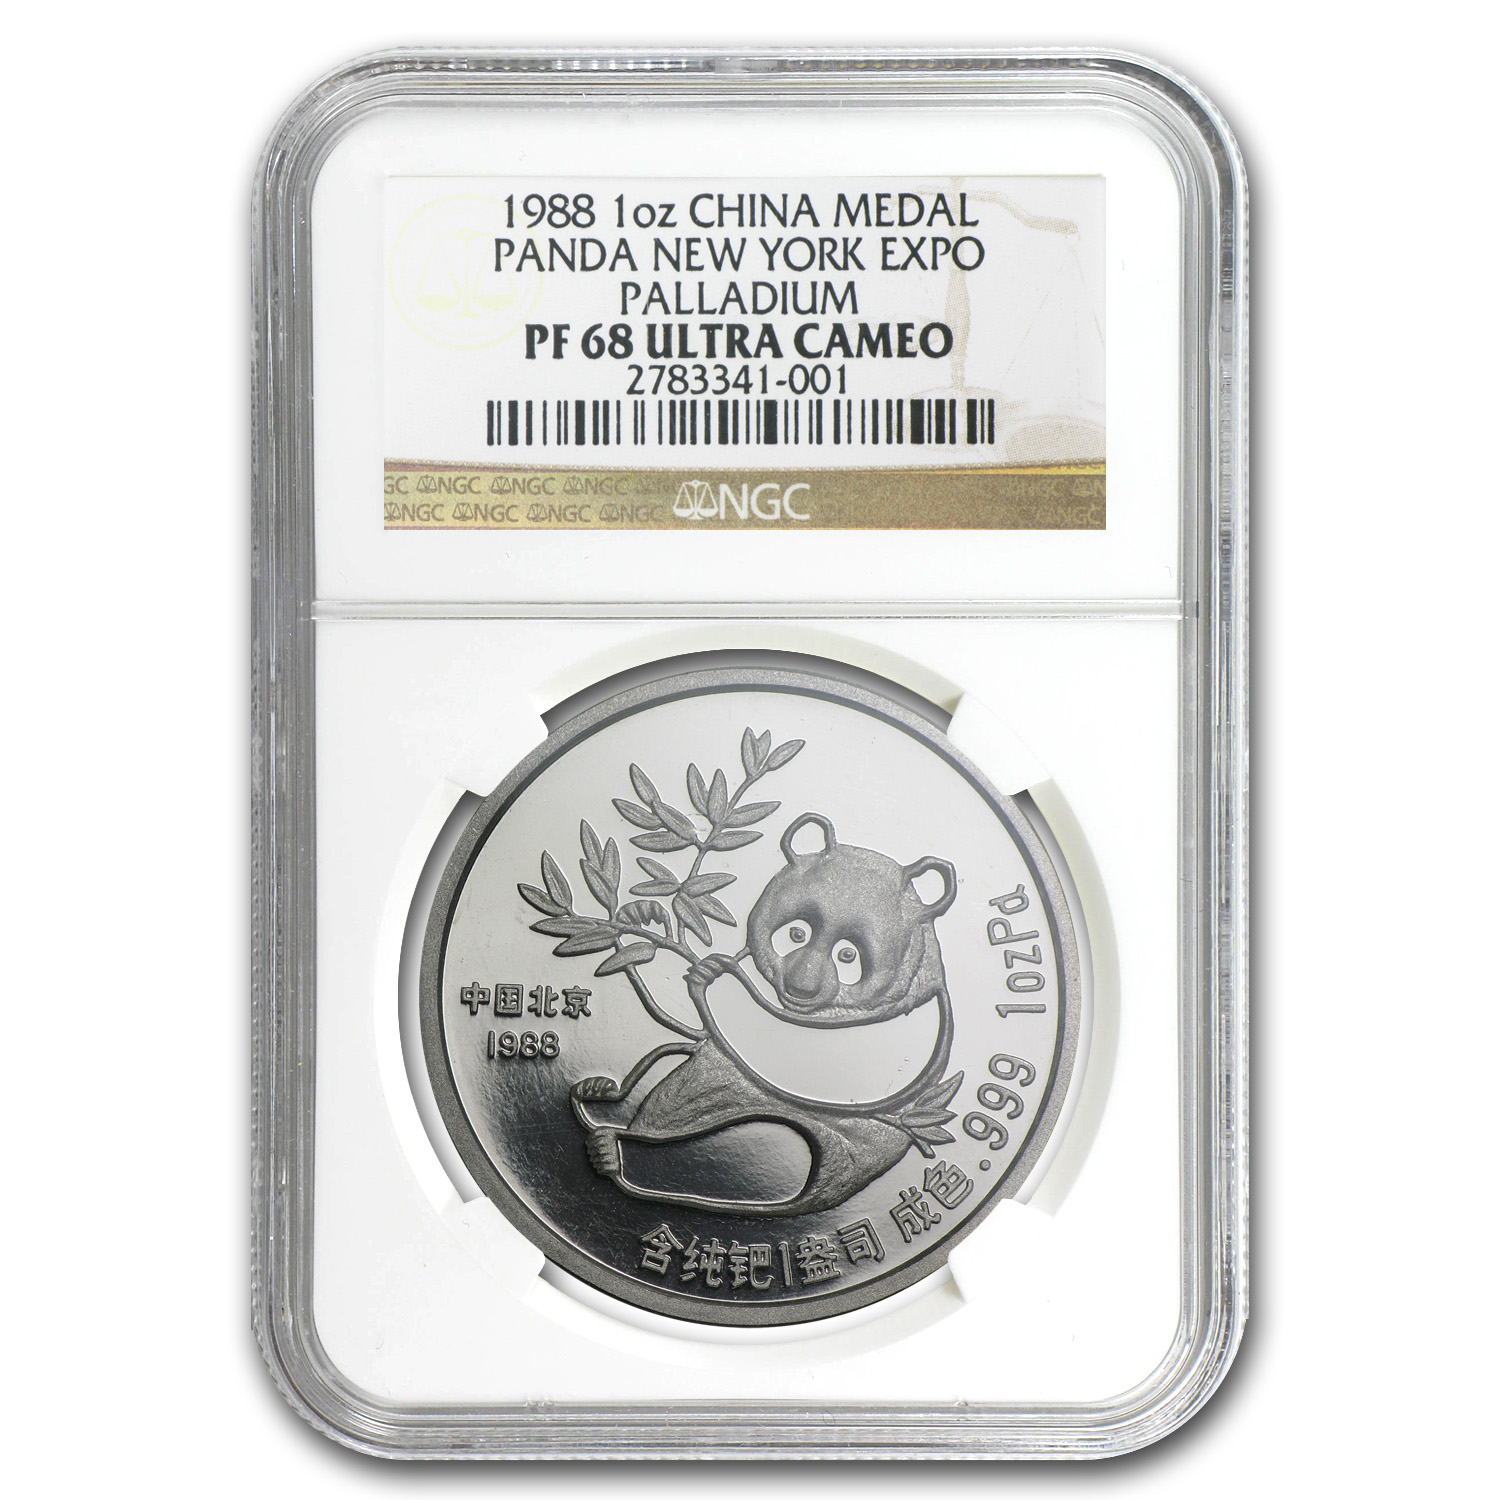 1988 China 1 oz Palladium Panda PF-68 NGC (New York Coin Expo)